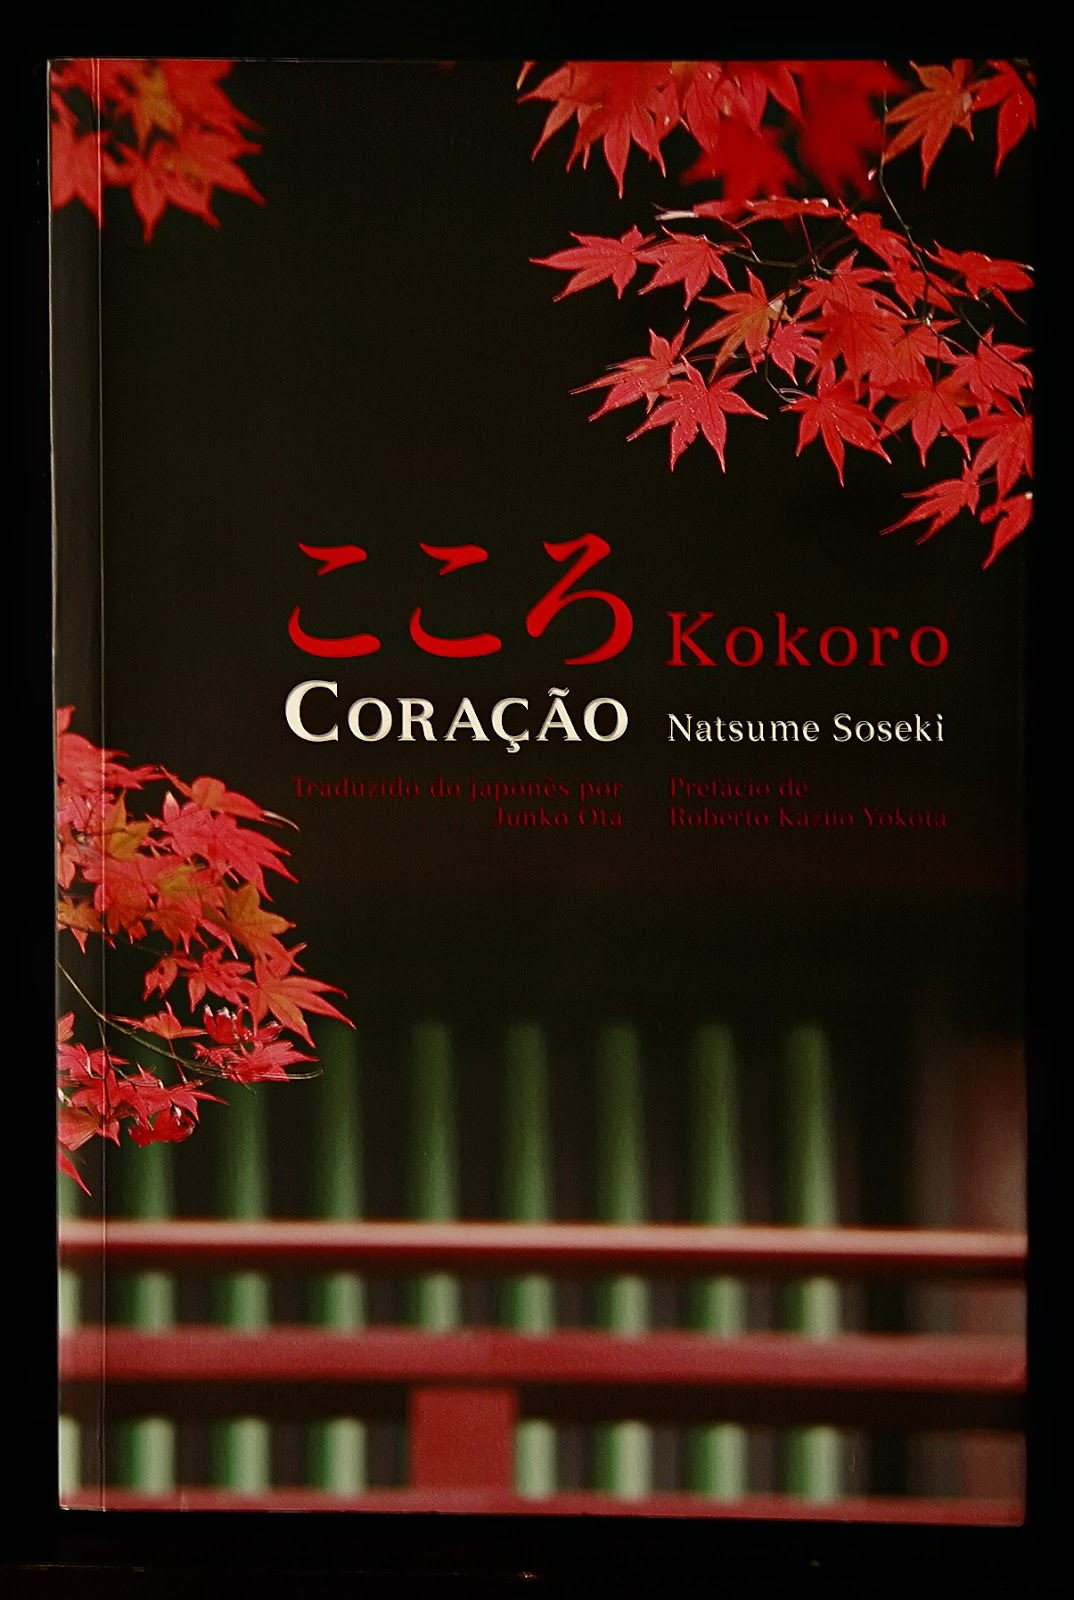 an examination of kokoro by natsume soseki Anachronistic selves: personal ambiguity in natsume soseki's kokoro there are many ambiguous issues that are engendered in kokoro, but this essay will specifically.